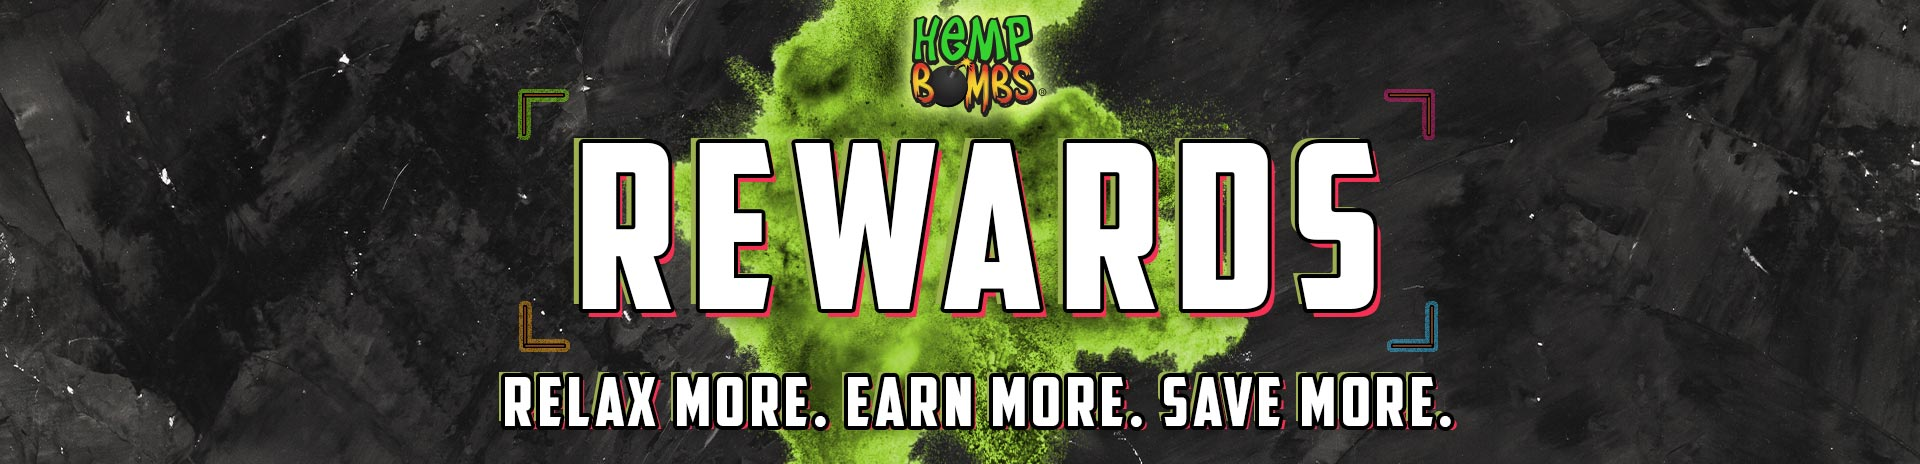 Hemp Bombs CBD Rewards Program